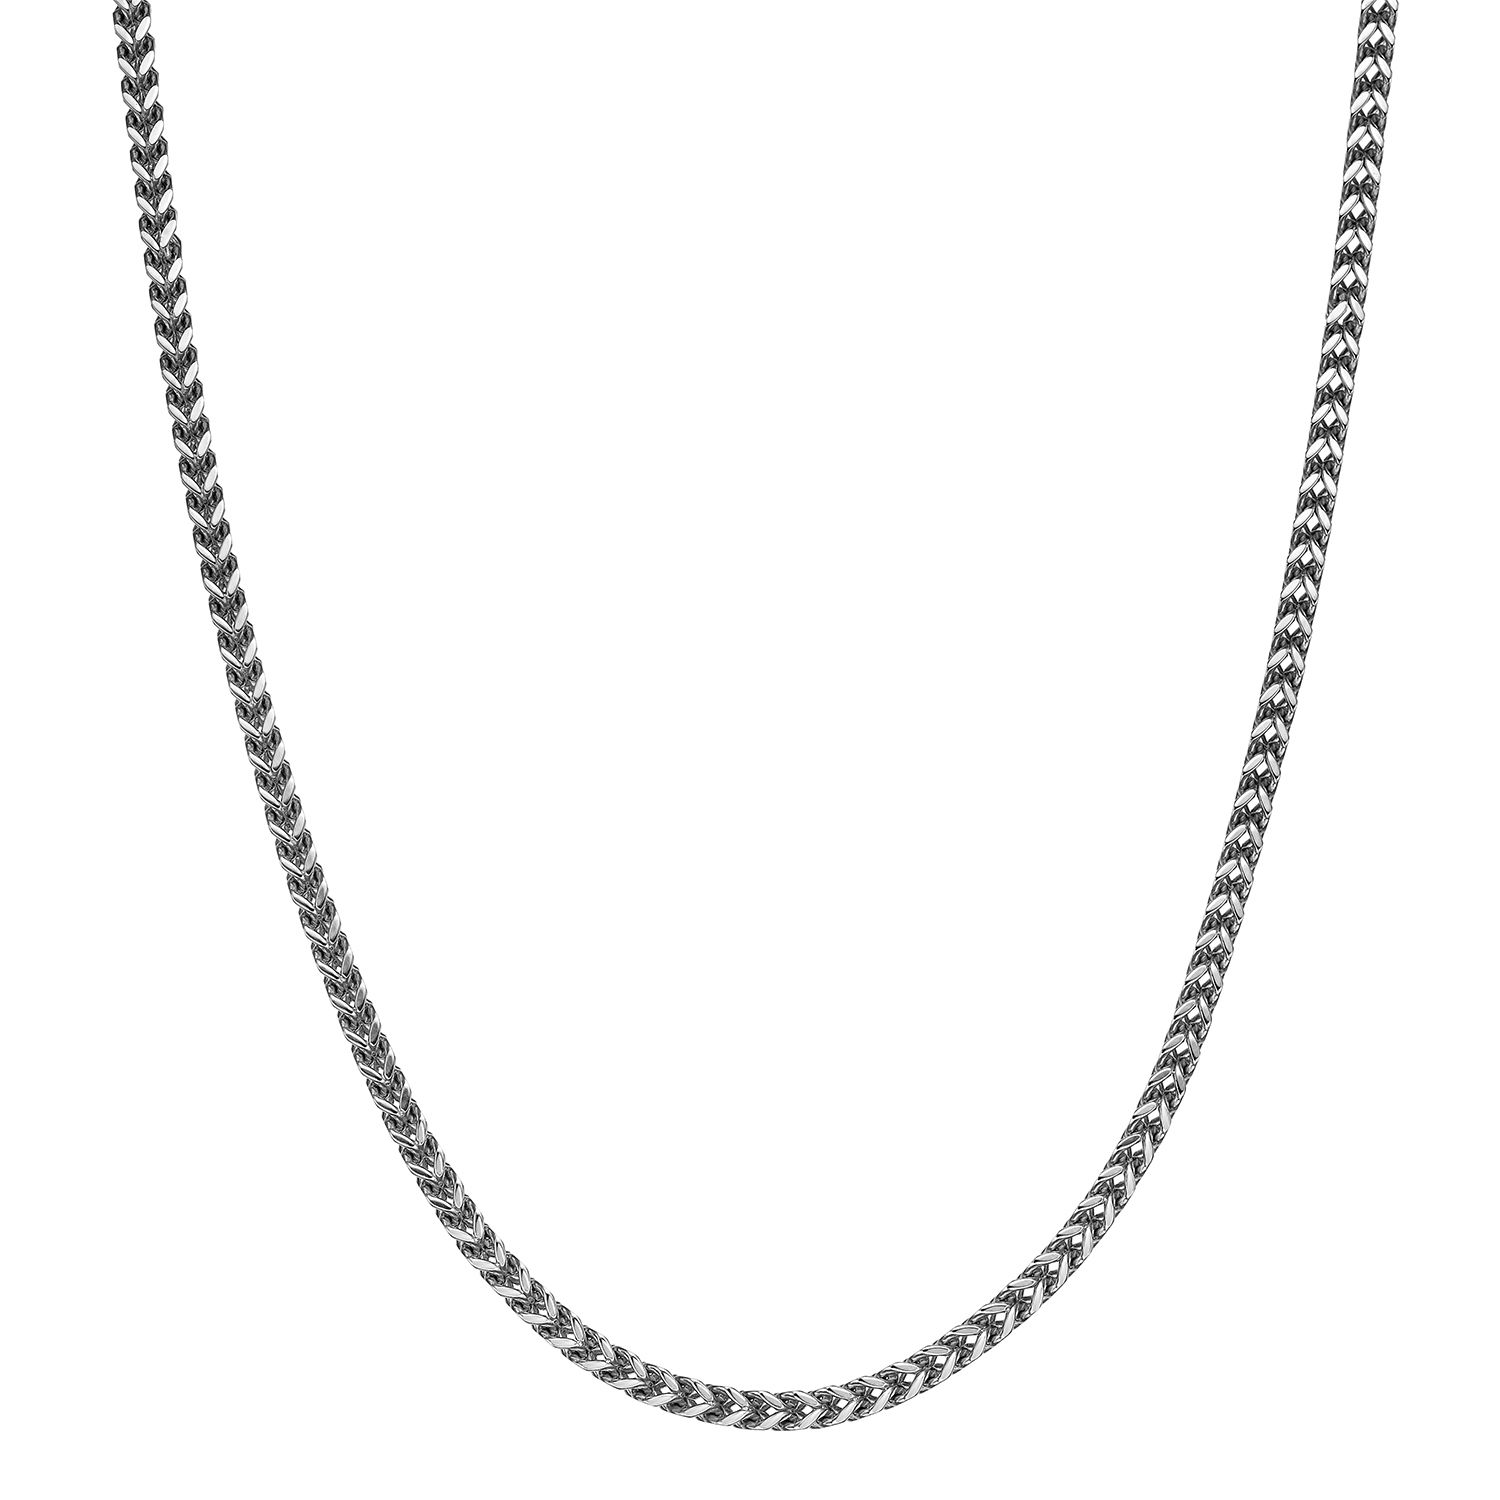 LOPEZ KENT Stainless Steel Necklace Men Key Red//Black//White//Blue Cubic Zirconia Necklace Silver